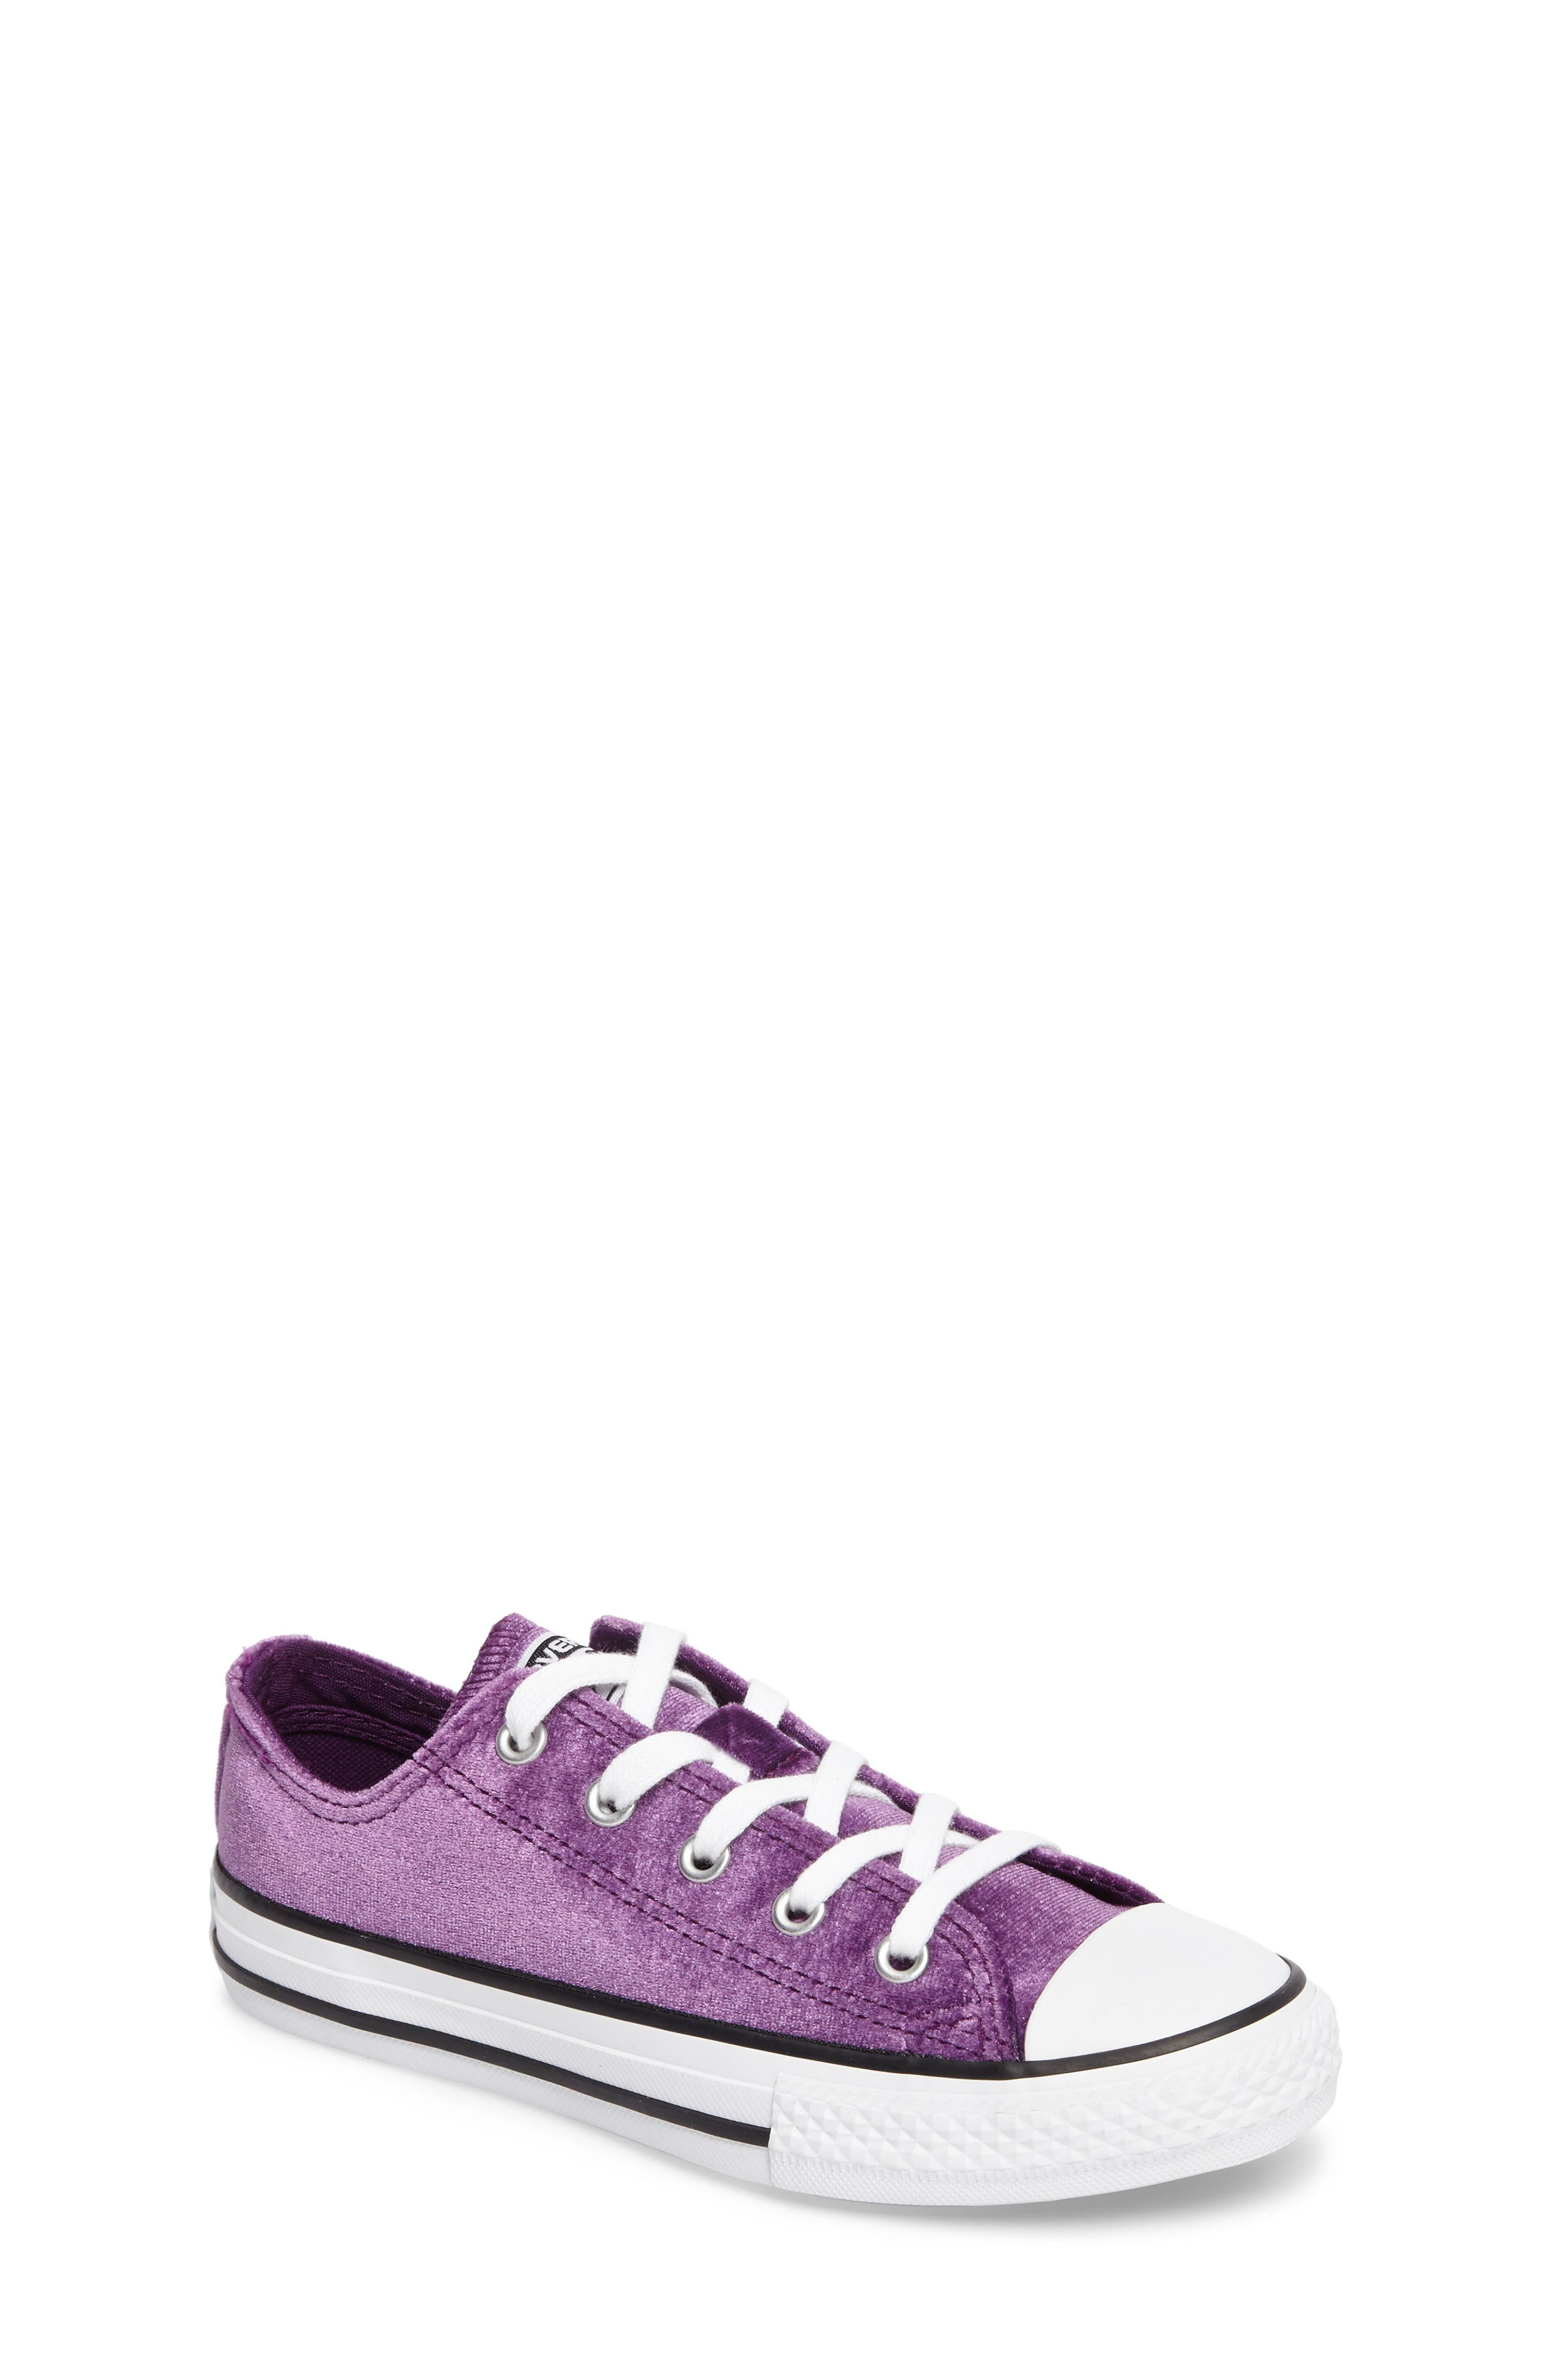 Chuck Taylor<sup>®</sup> All Star<sup>®</sup> Velvet OX Low Top Sneaker,                         Main,                         color, Night Purple Velvet